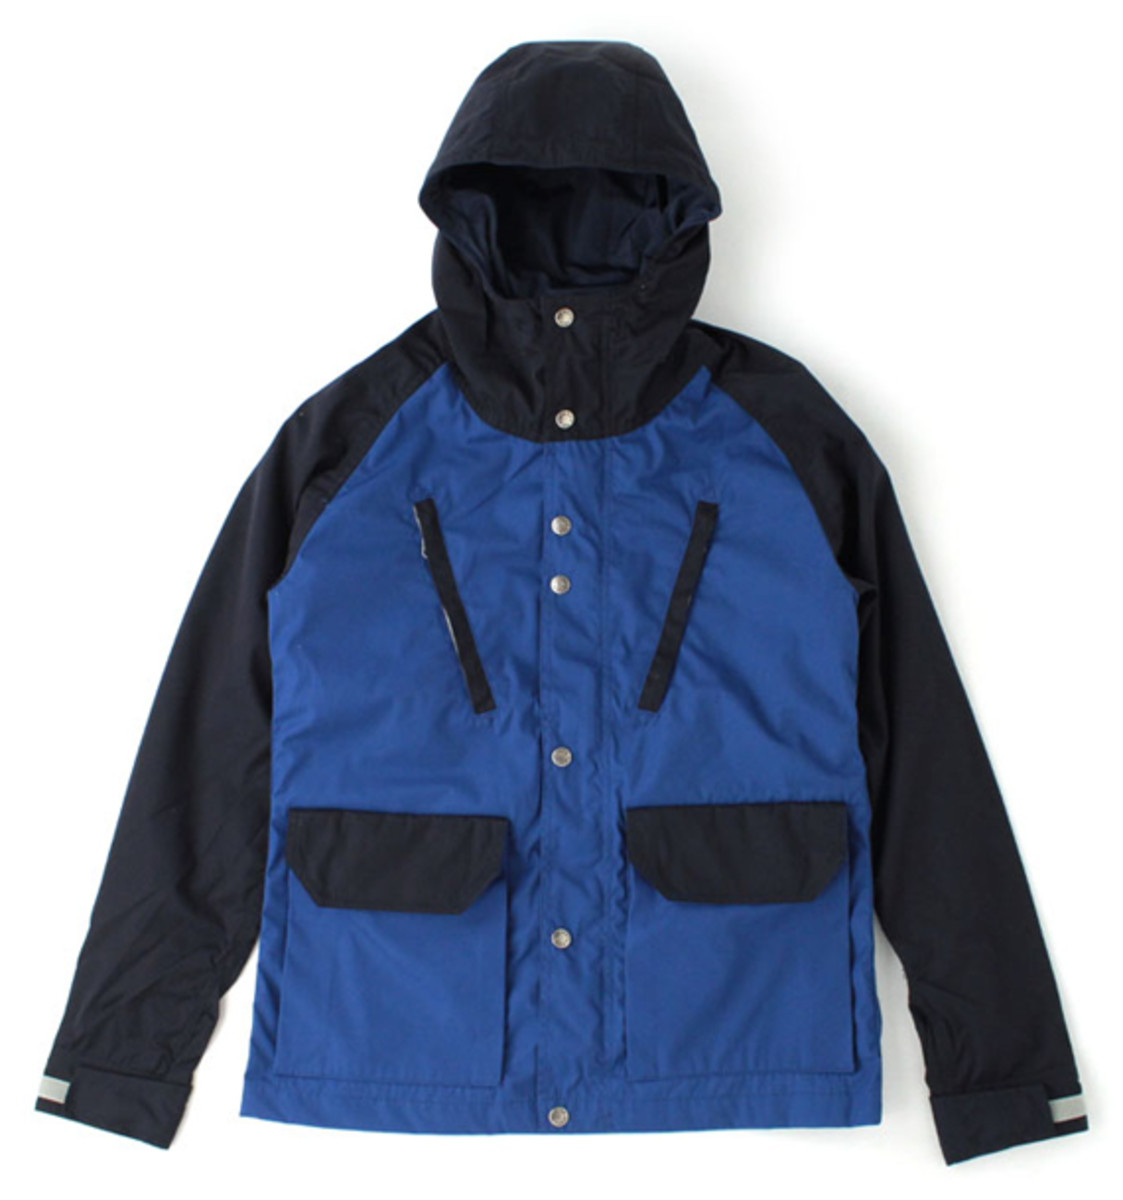 the-north-face-purple-label-65-35-mountain-parka-01